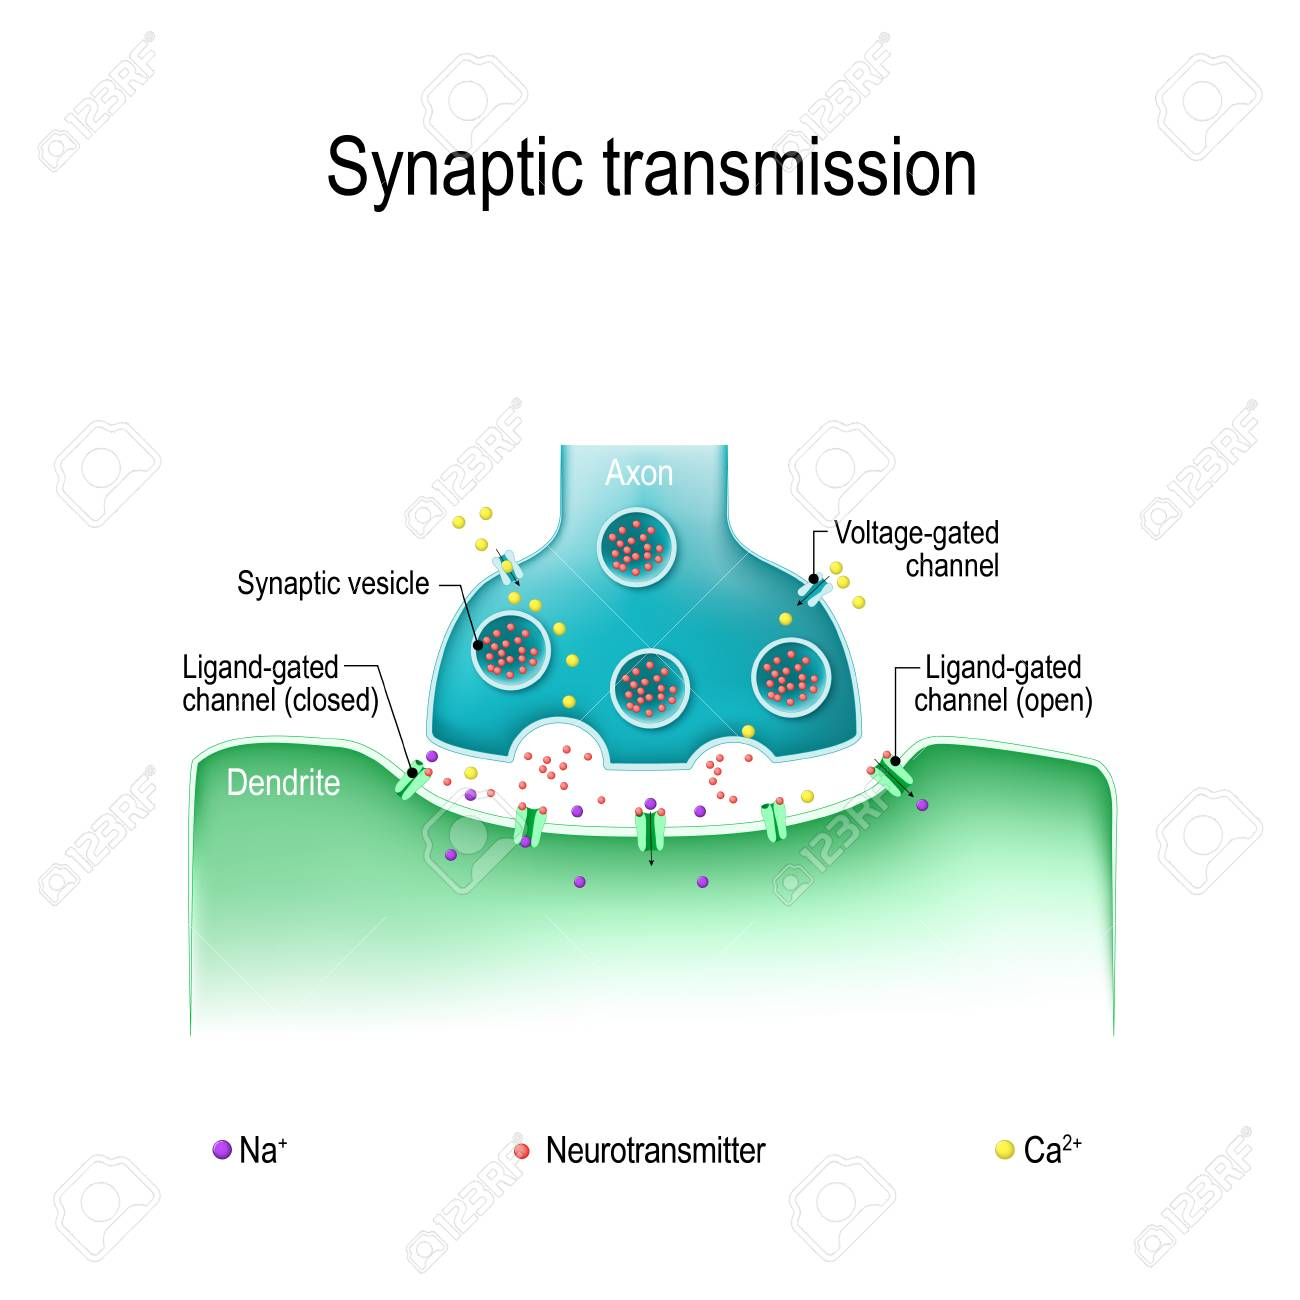 Synaptic transmission. Structure of a typical chemical synapse. Neurotransmitter release mechanisms. Neurotransmitters are packaged into synaptic vesicles transmit signals from a neuron to a target cell. - 89478665